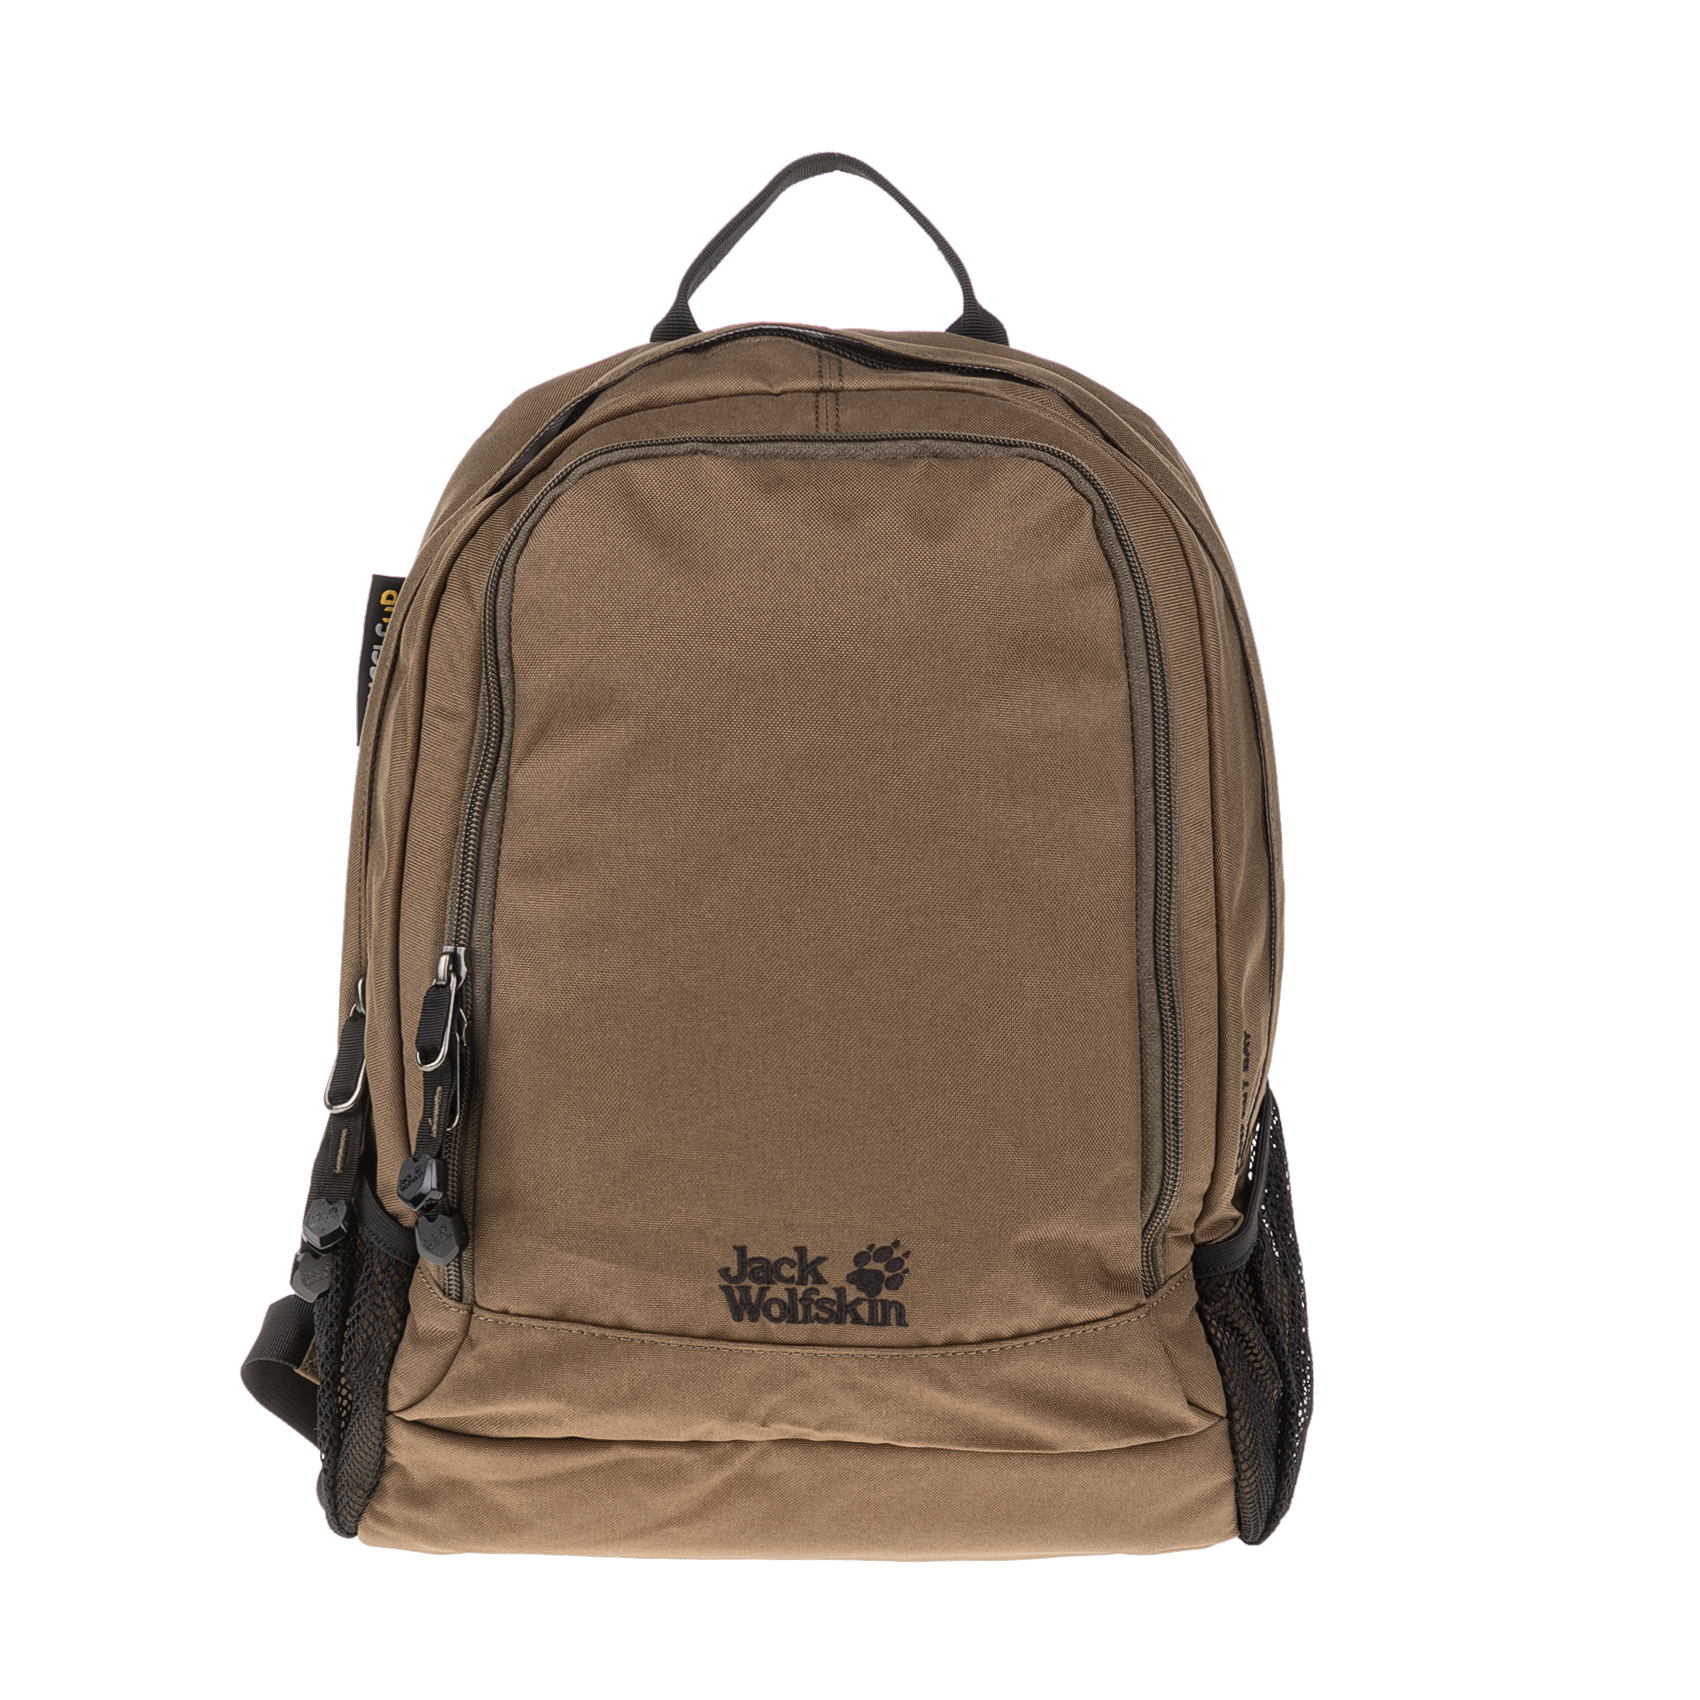 JACK WOLFSKIN – Τσάντα πλάτης PERFECT DAY DAYPACK EQUIPMENT JACK WOLFSKIN καφέ 1635934.0-K100